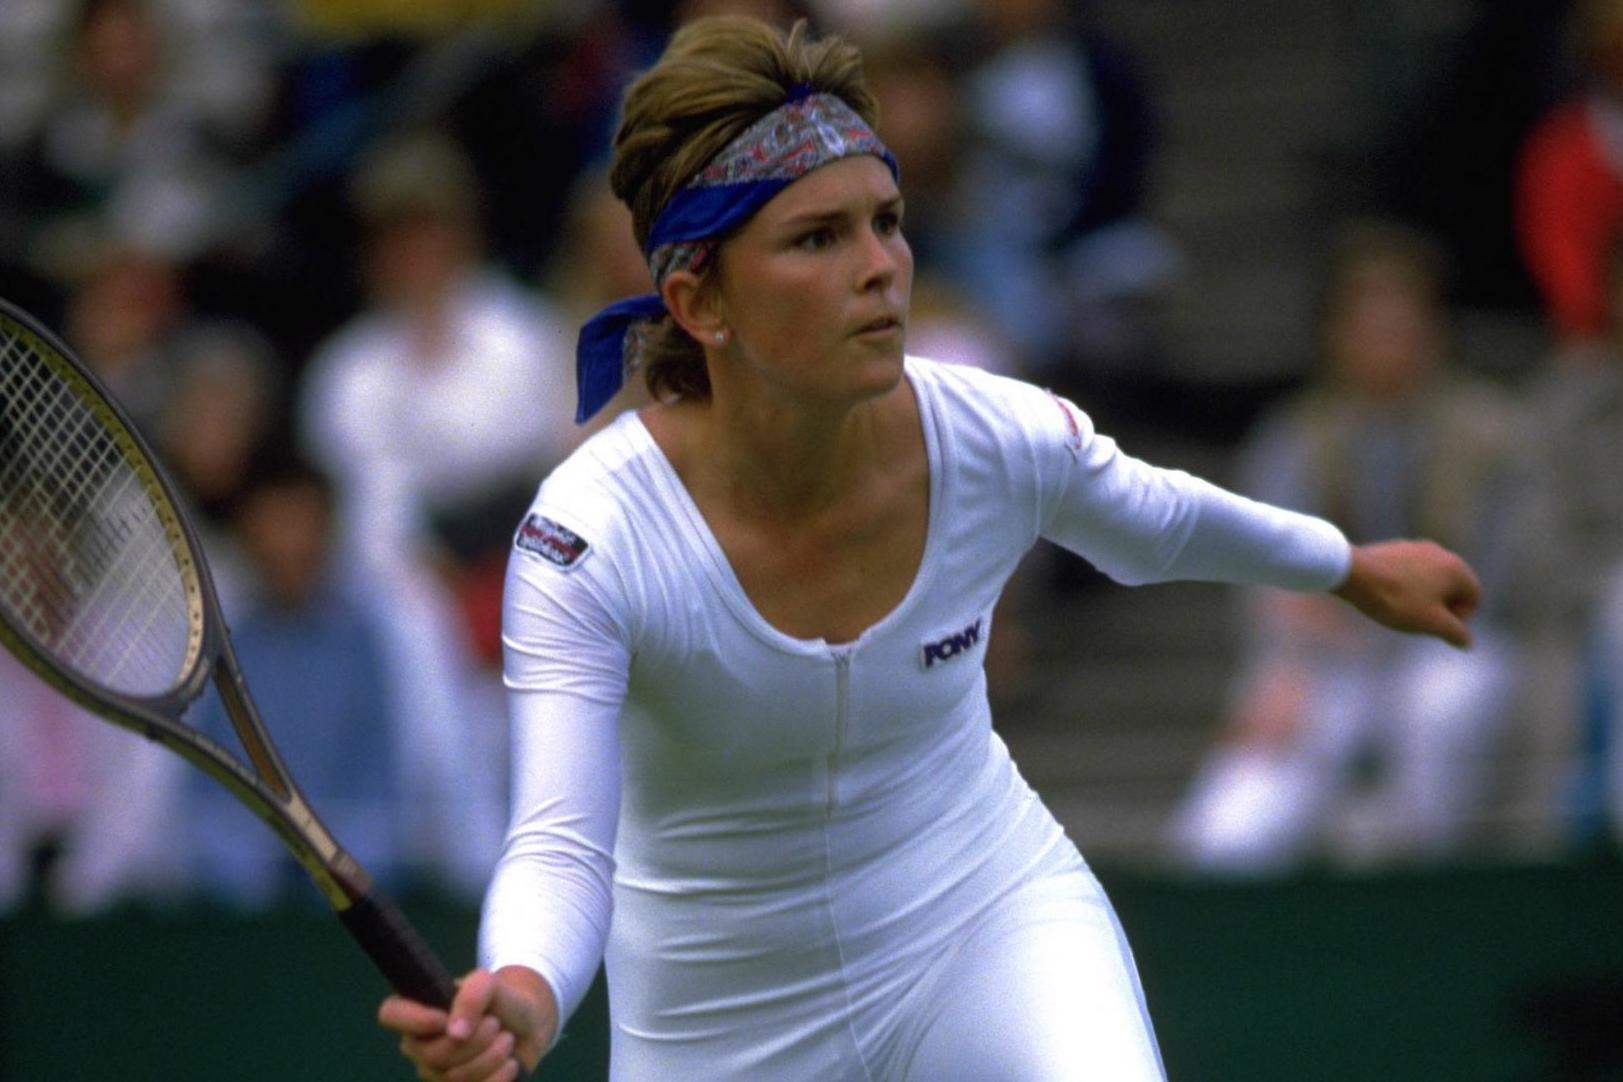 The most controversial Wimbledon outfits of all time